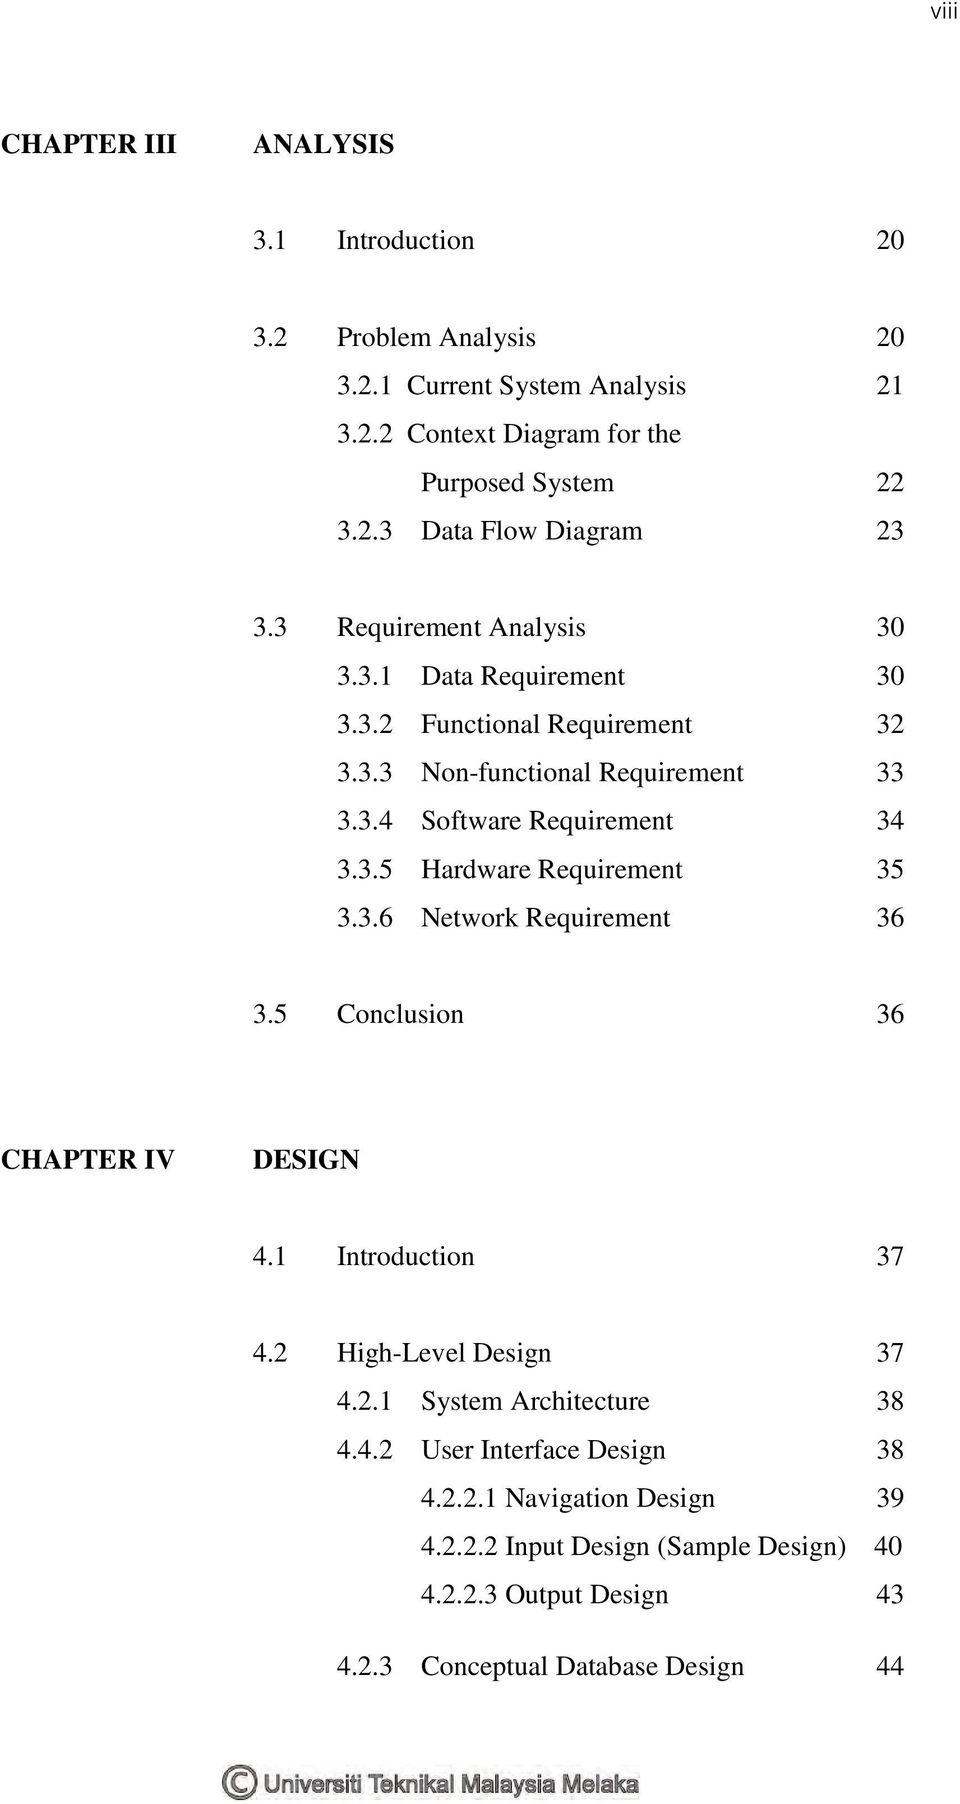 3.6 Network Requirement 36 3.5 Conclusion 36 CHAPTER IV DESIGN 4.1 Introduction 37 4.2 High-Level Design 37 4.2.1 System Architecture 38 4.4.2 User Interface Design 38 4.